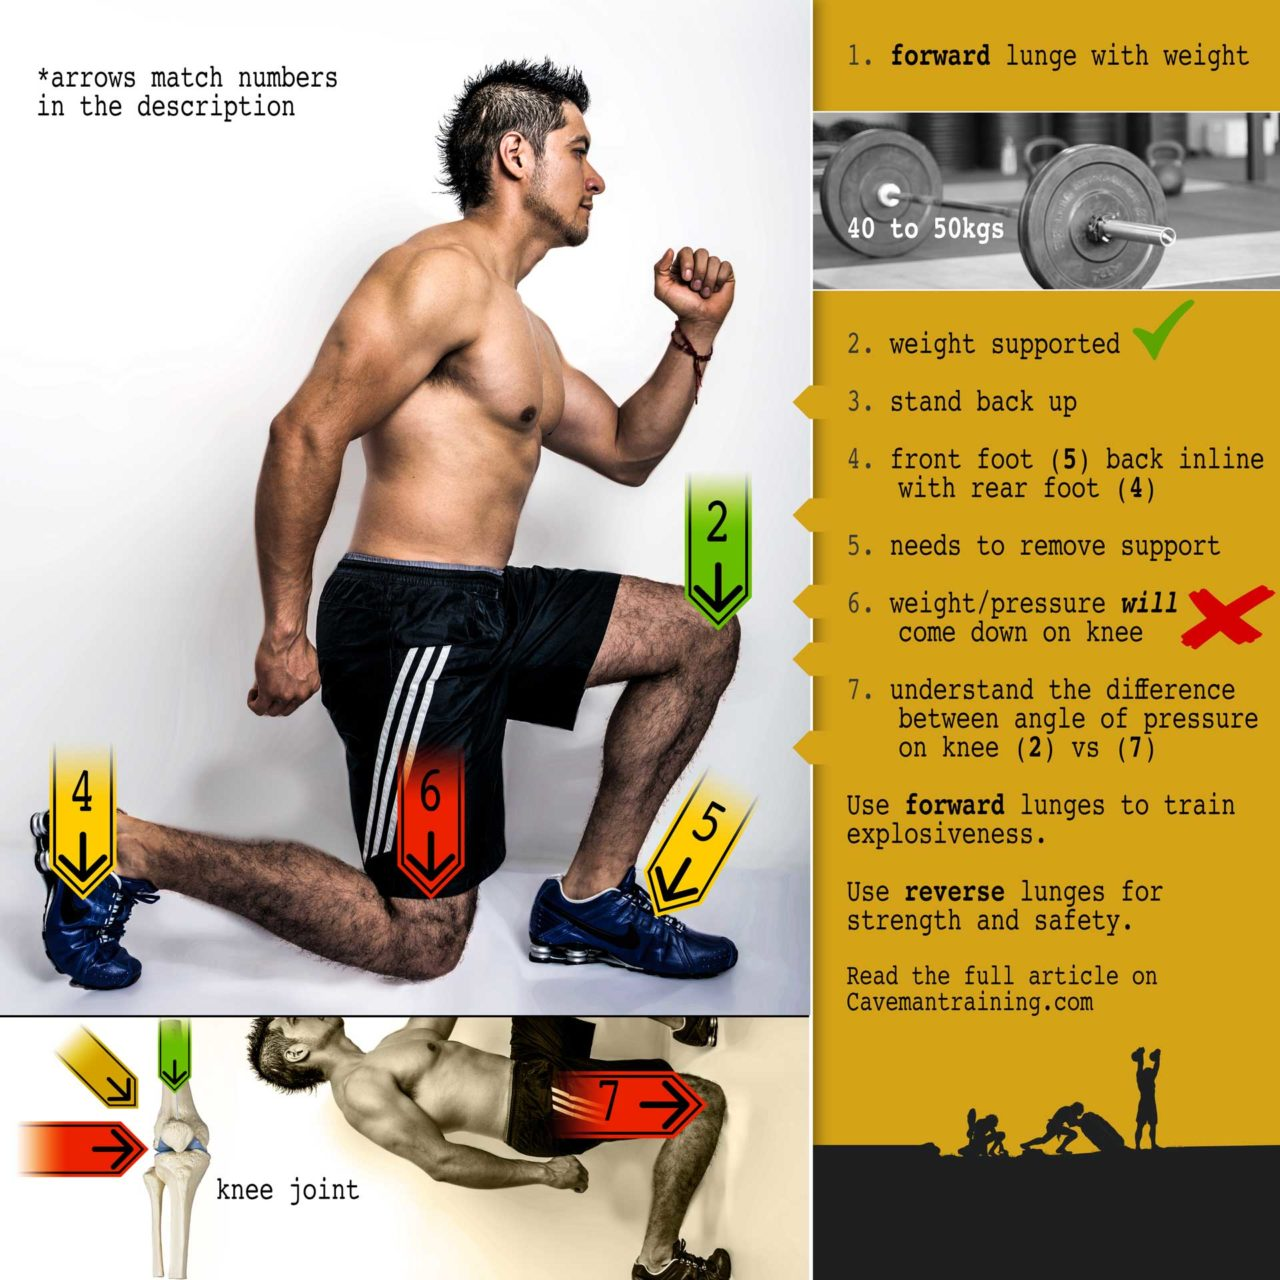 Lunges are bad!